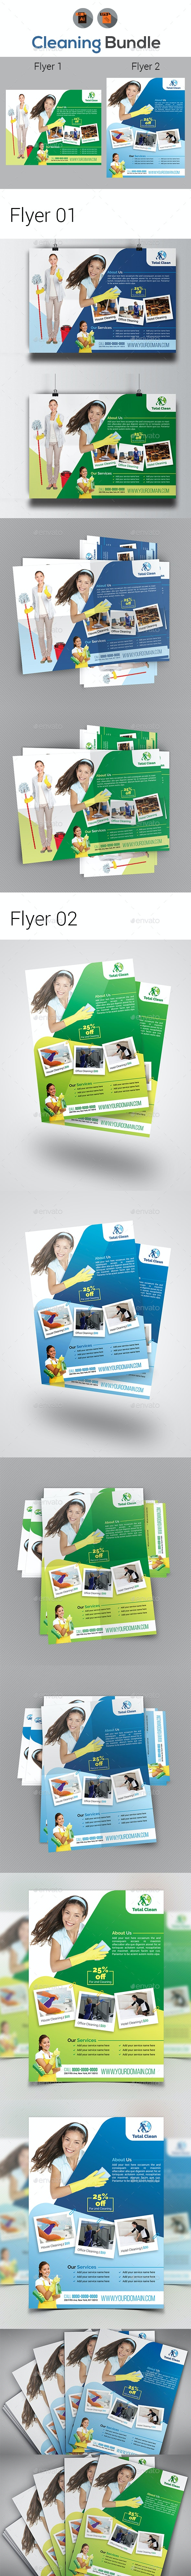 Cleaning Flyer | House | Office | Hotel - Corporate Flyers